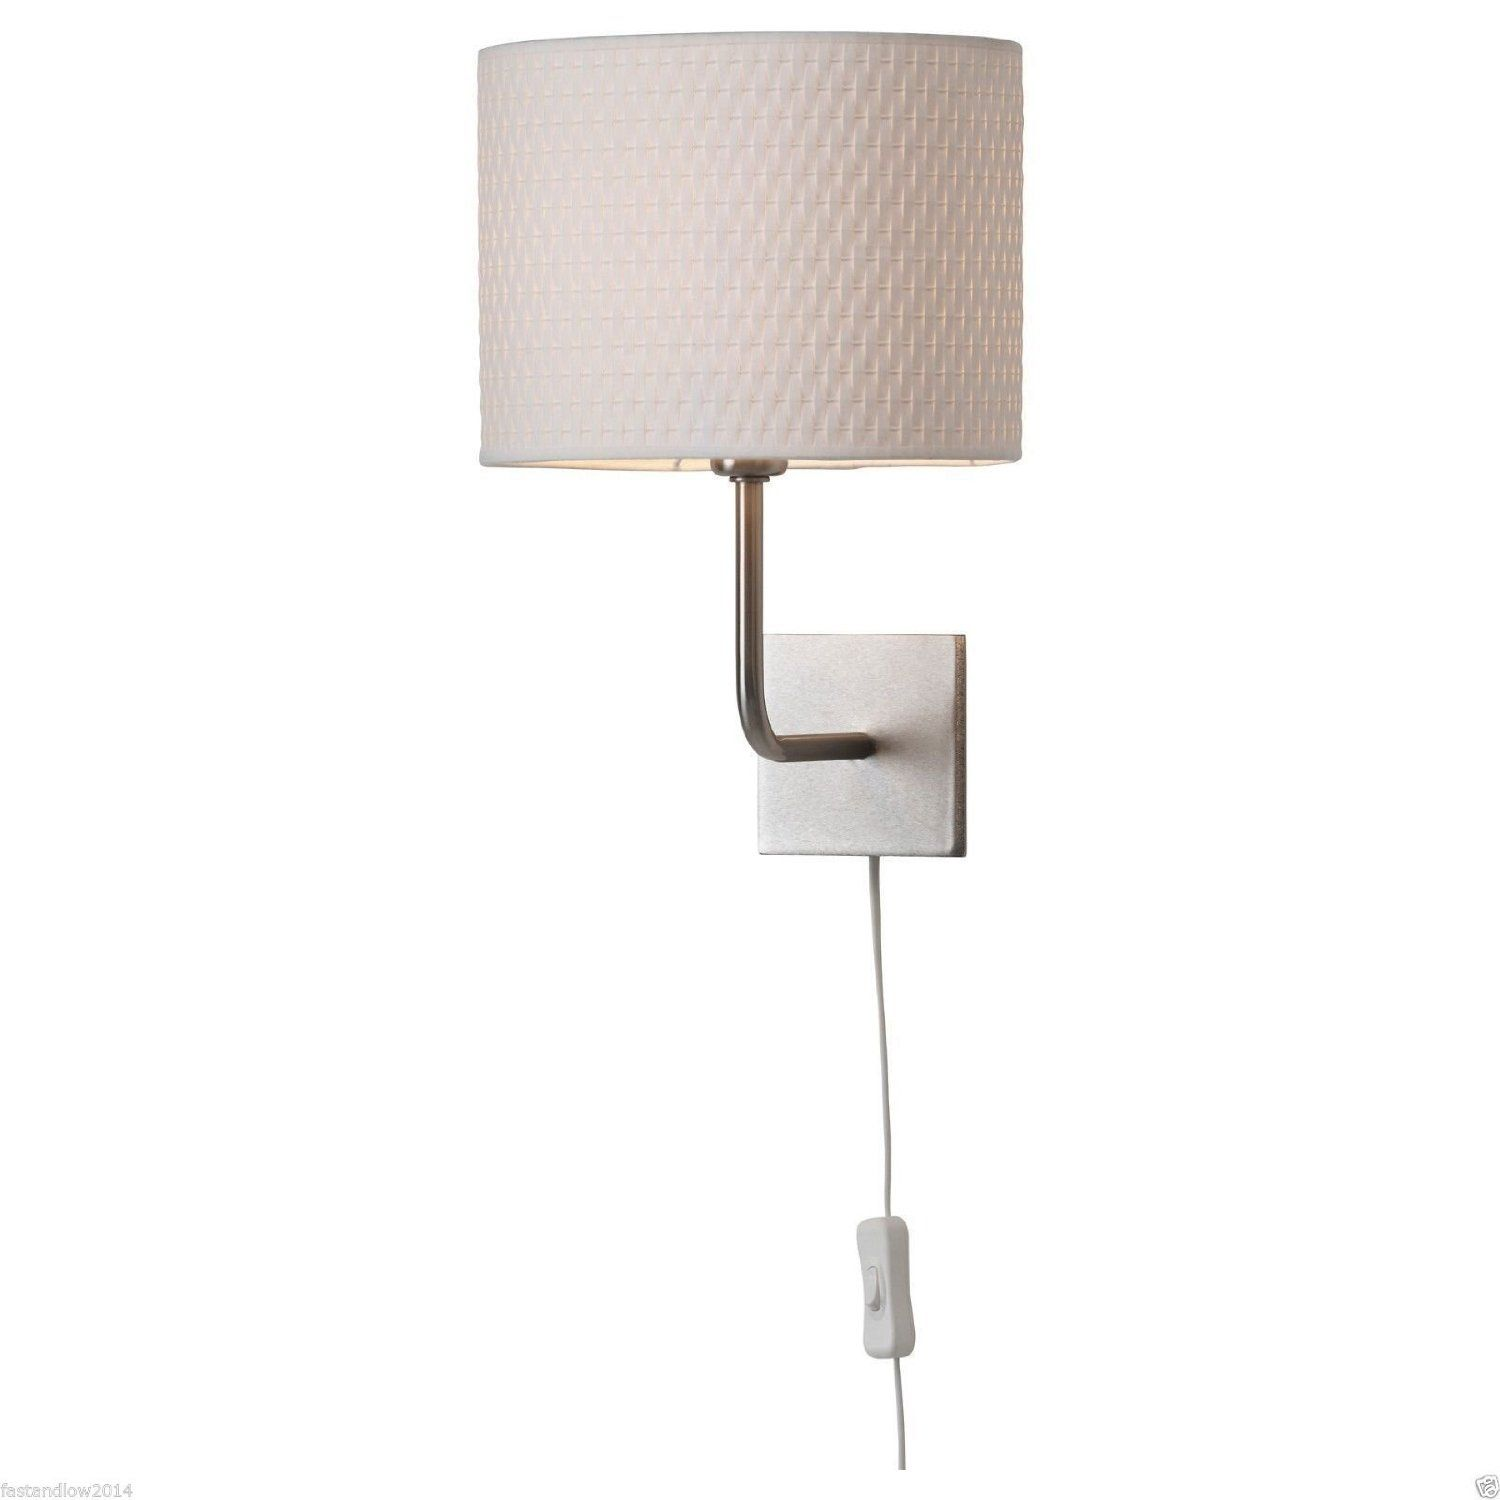 Superior Ikea Alang Wall Lamp, Nickel Plated, White   Wall Sconces   Amazon.com